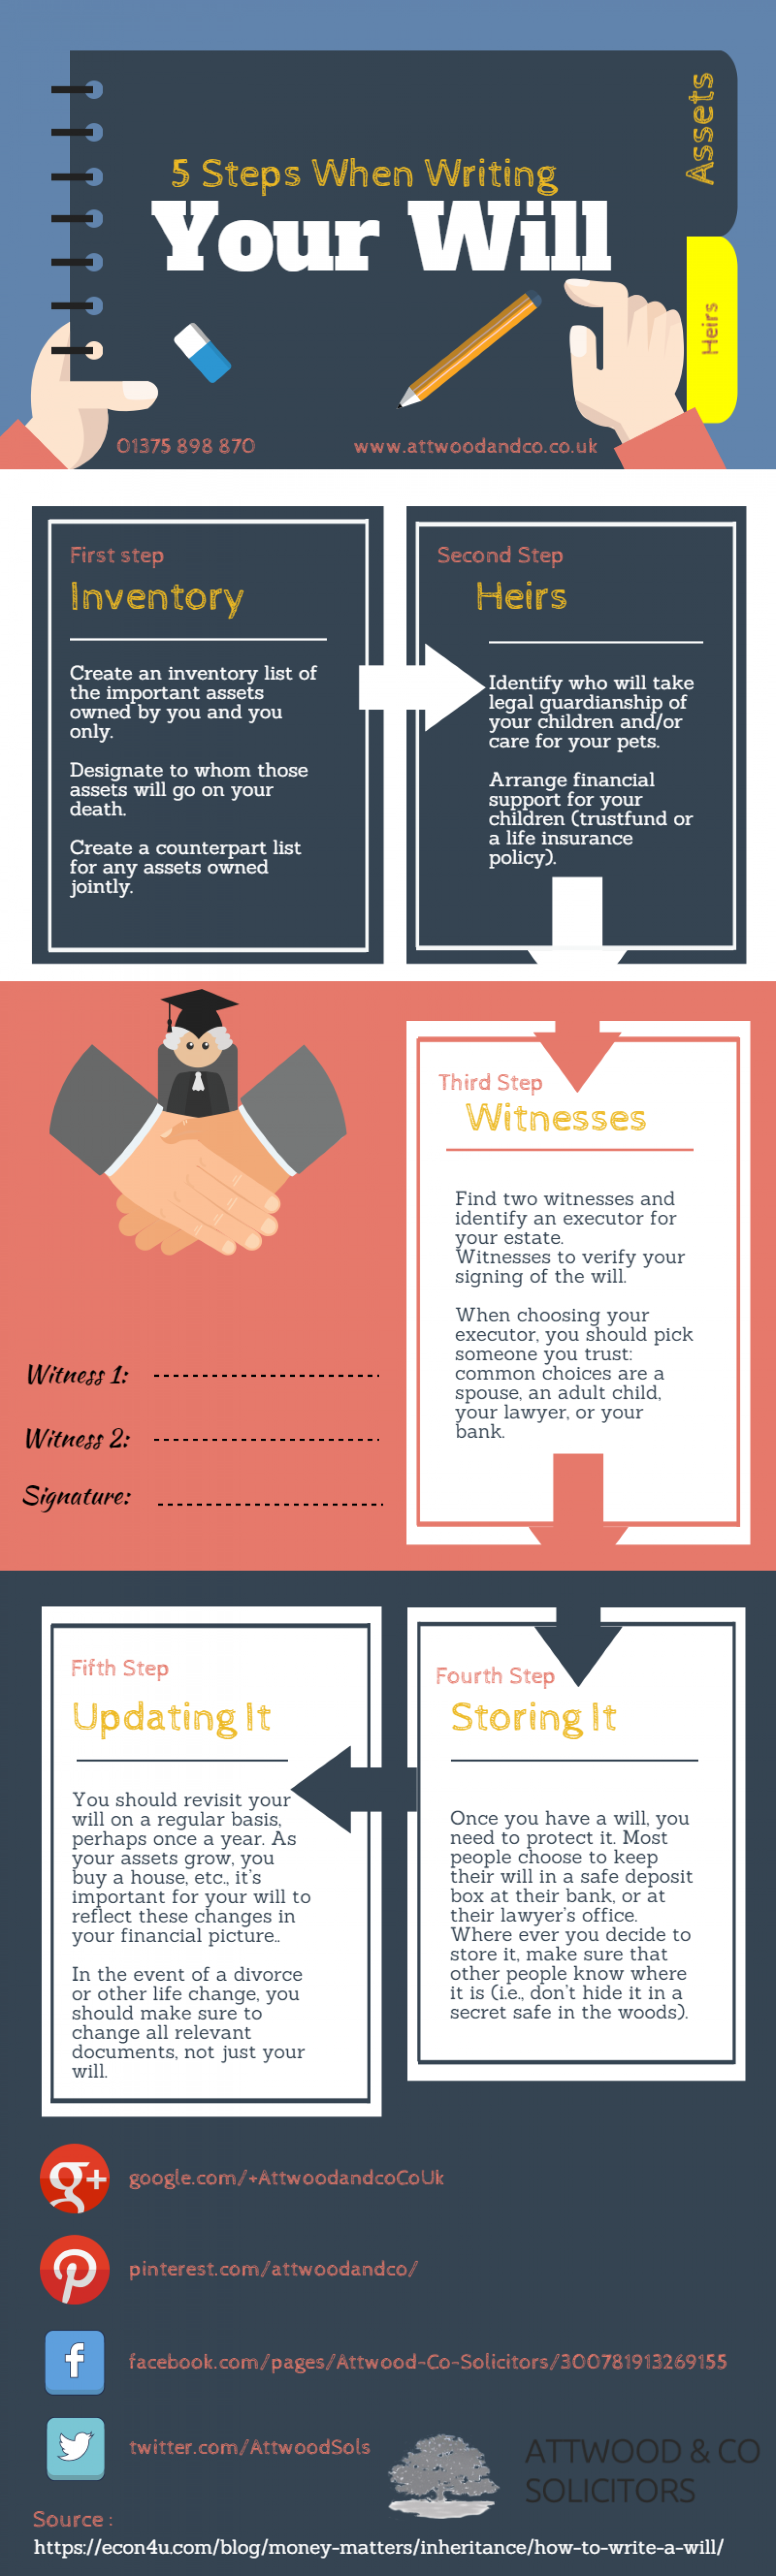 5 Steps When Writing Your Will Infographic